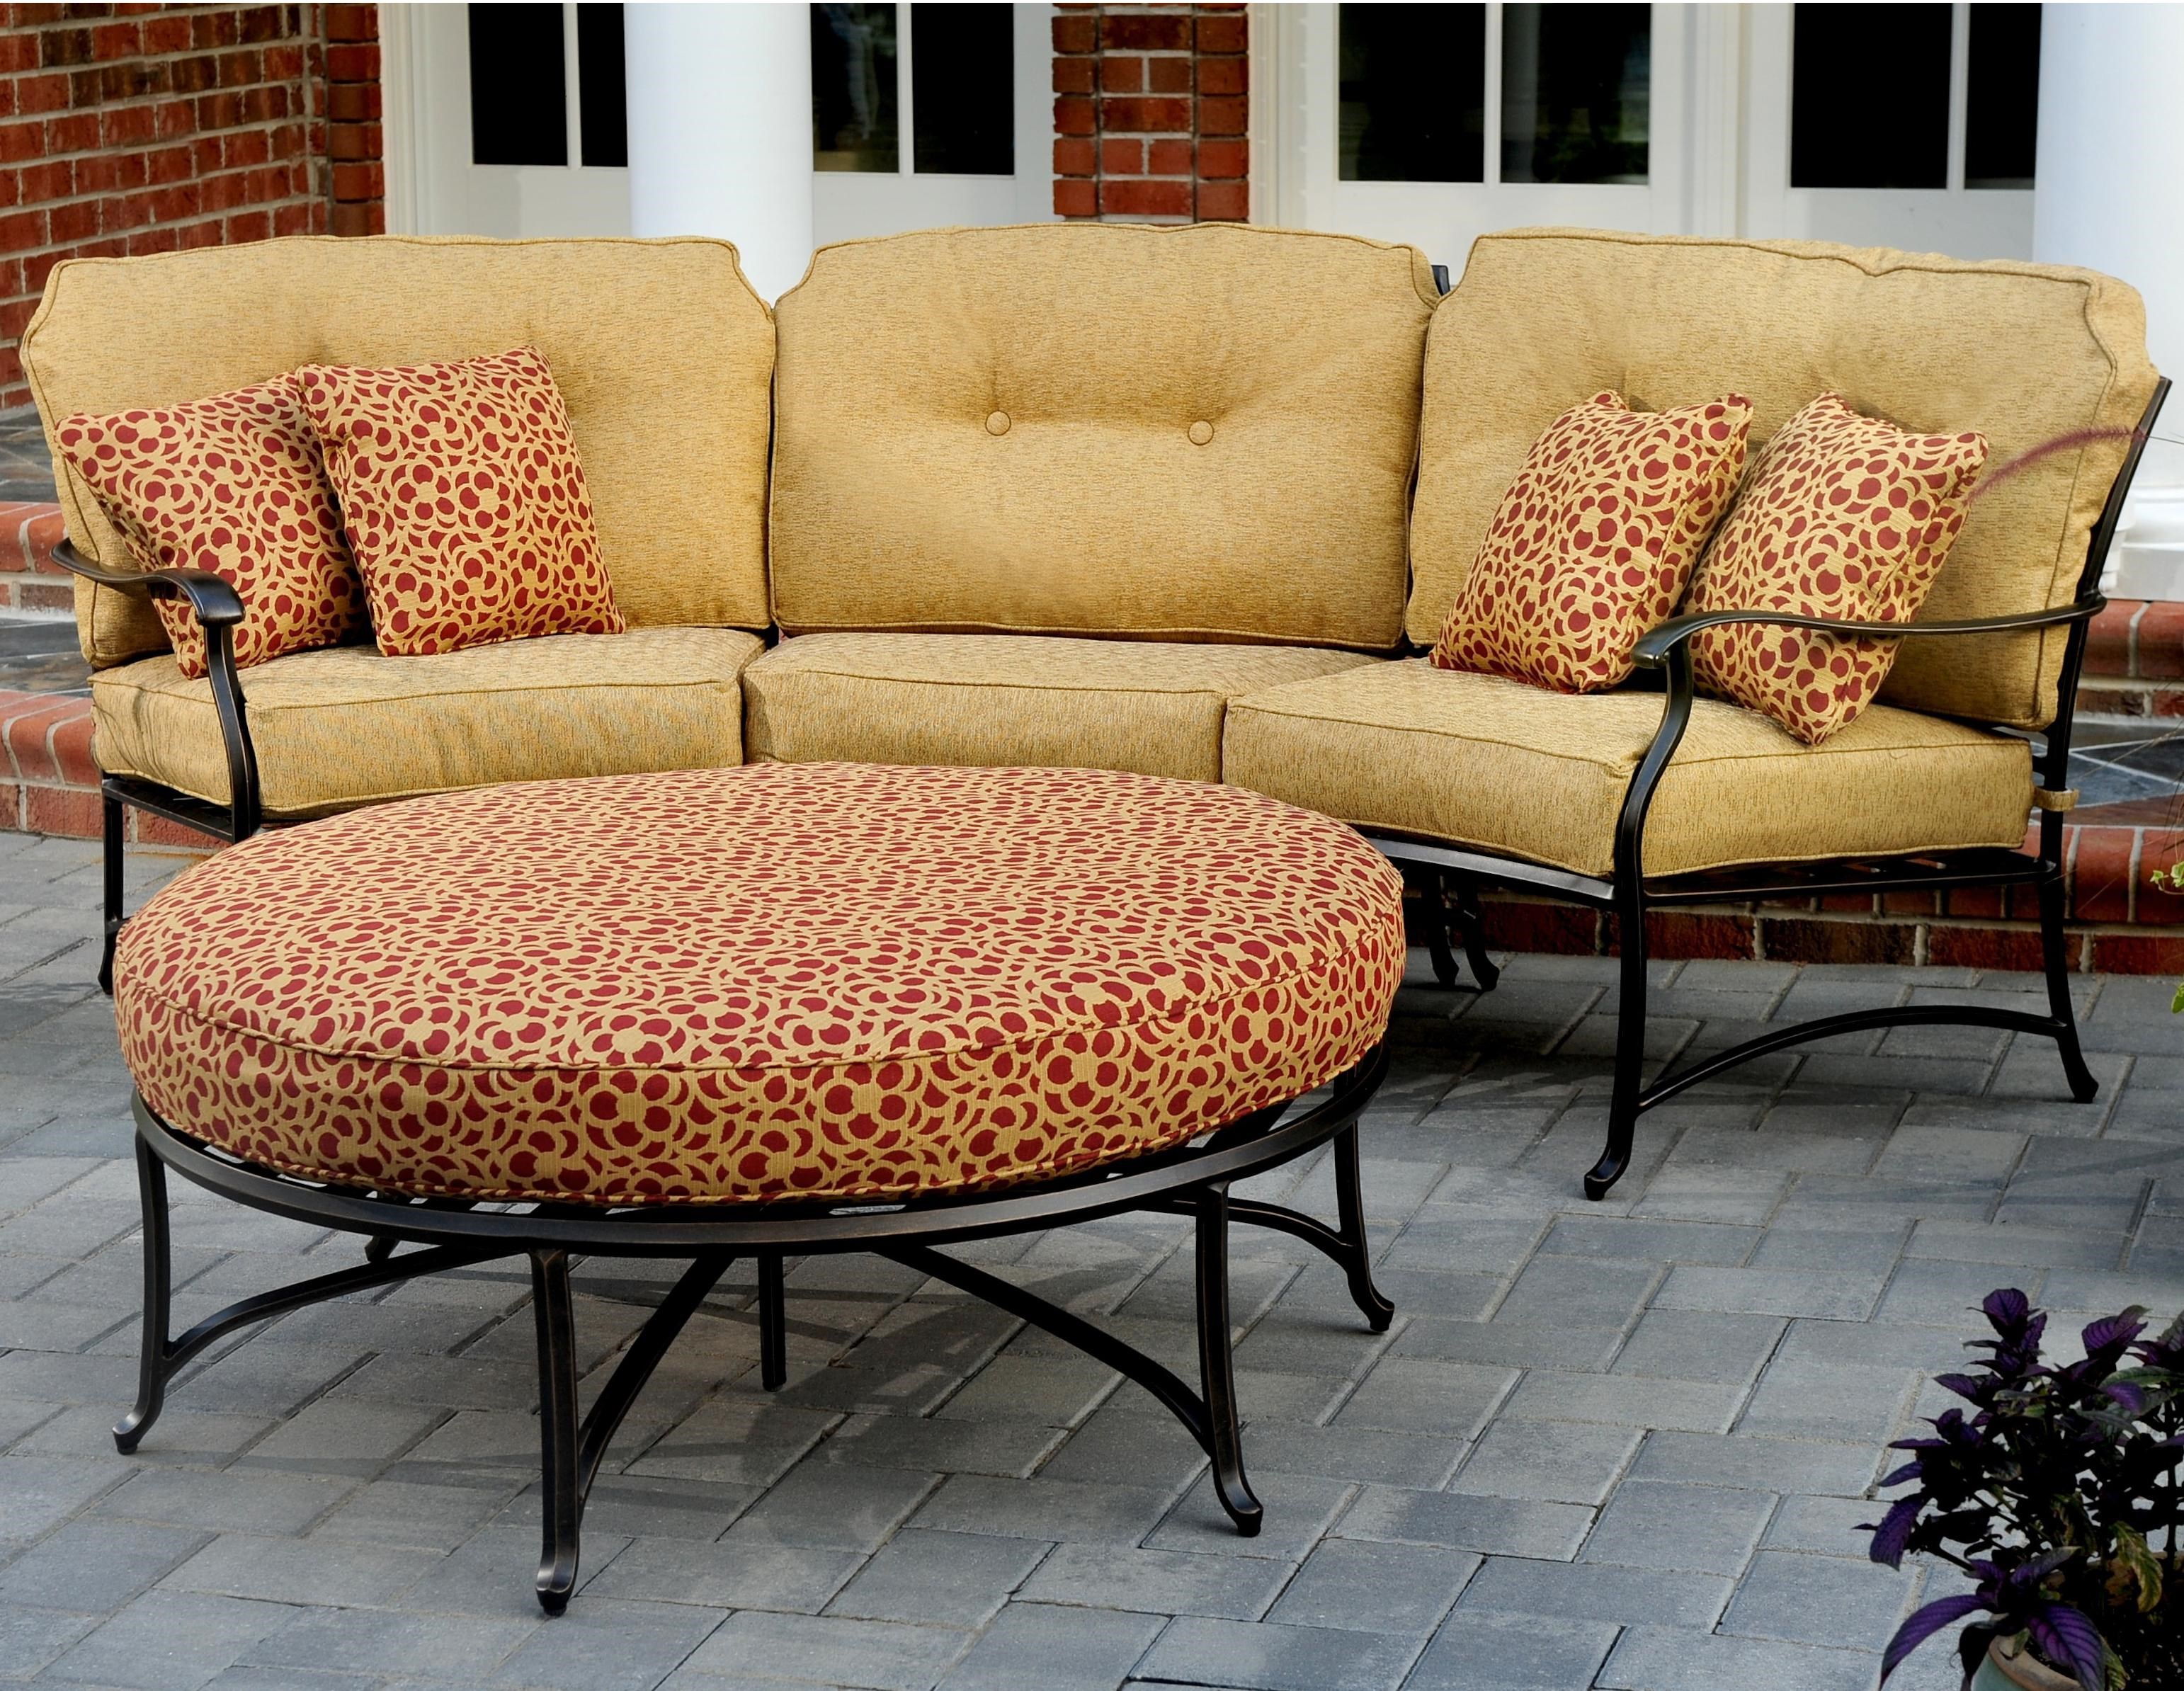 Agio Heritage Outdoor Semi Round Sectional Sofa